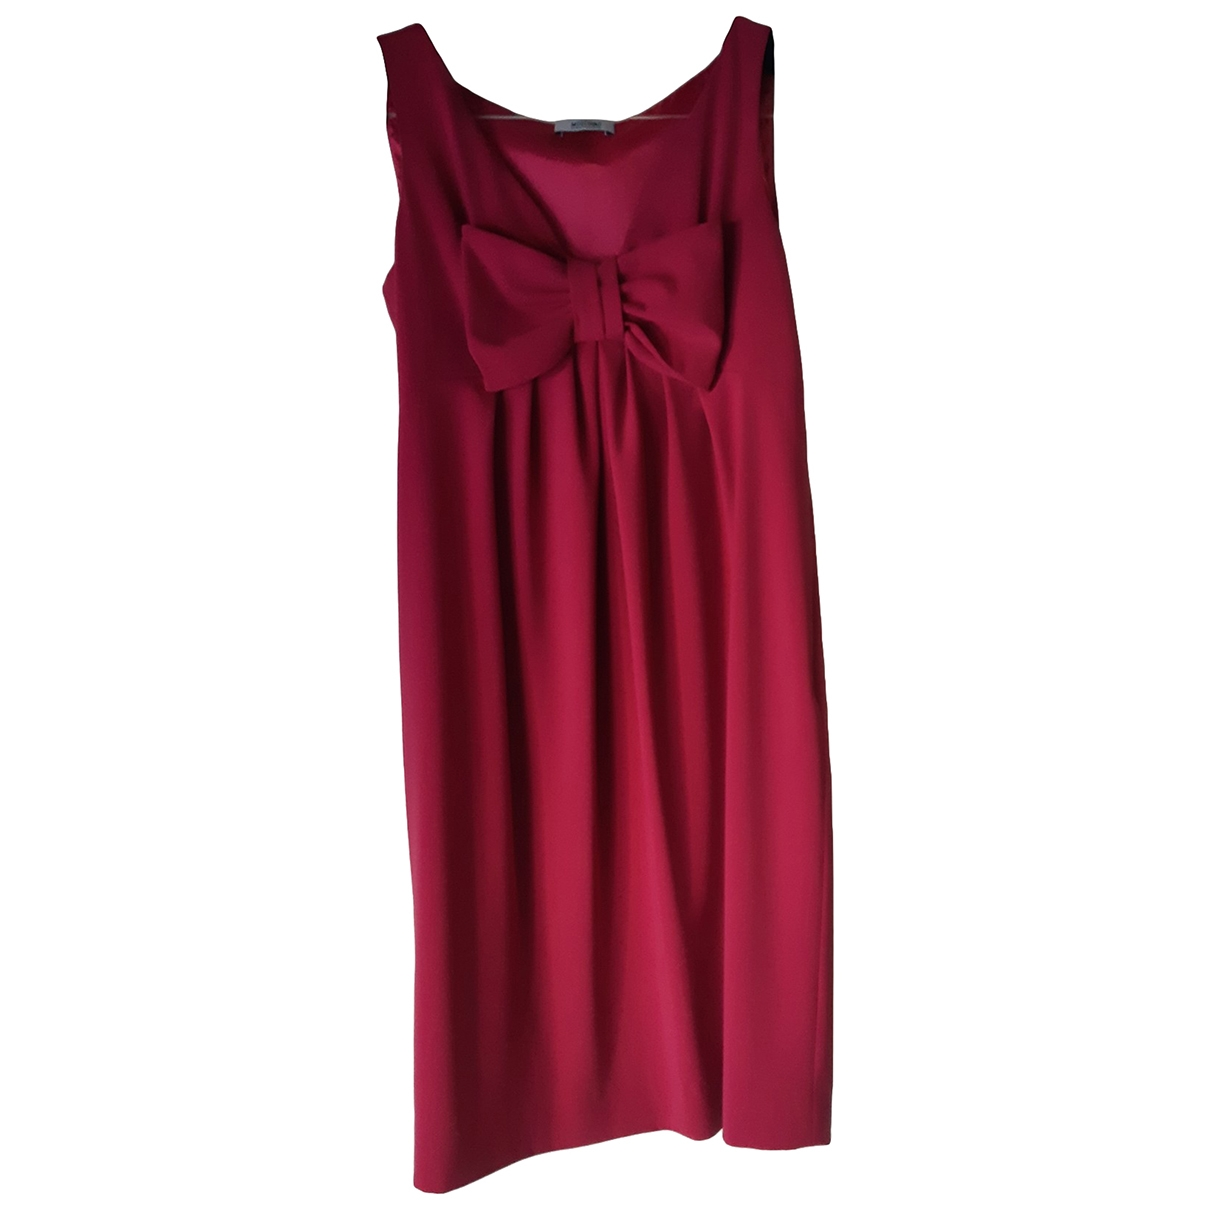 Moschino Cheap And Chic \N Pink dress for Women 42 FR